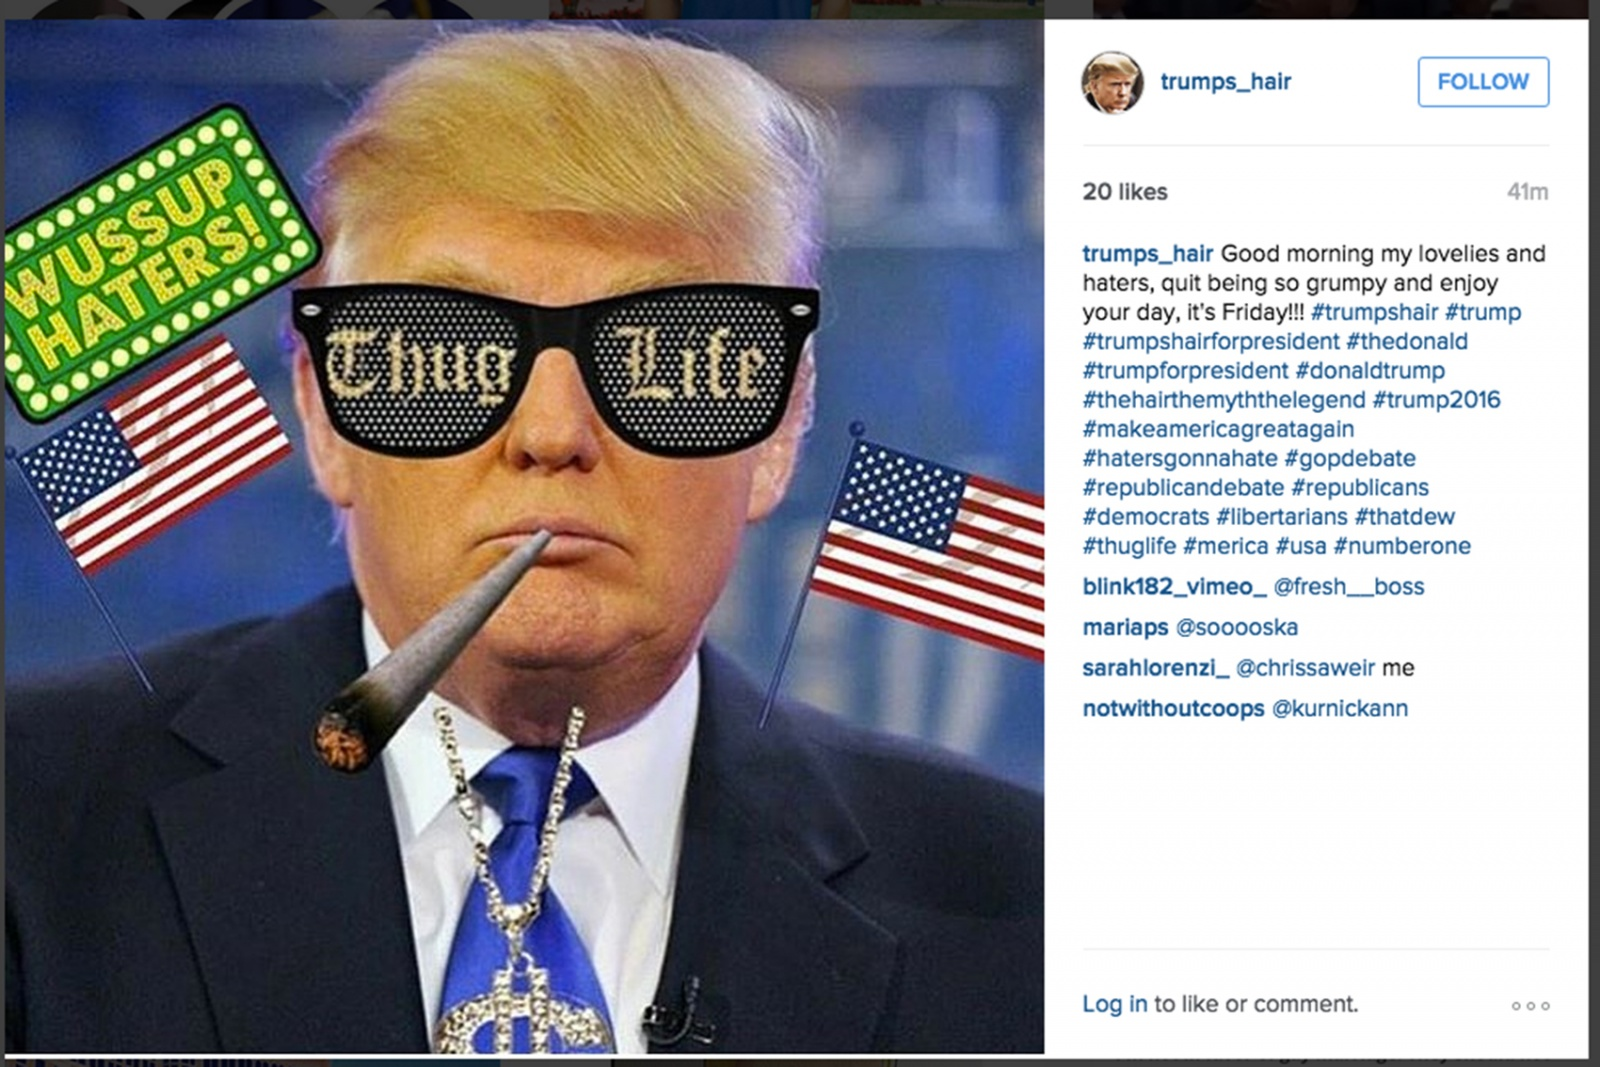 Trump is Right: Ultimate Thug Life Donald Trump (Debate Aug 2015)